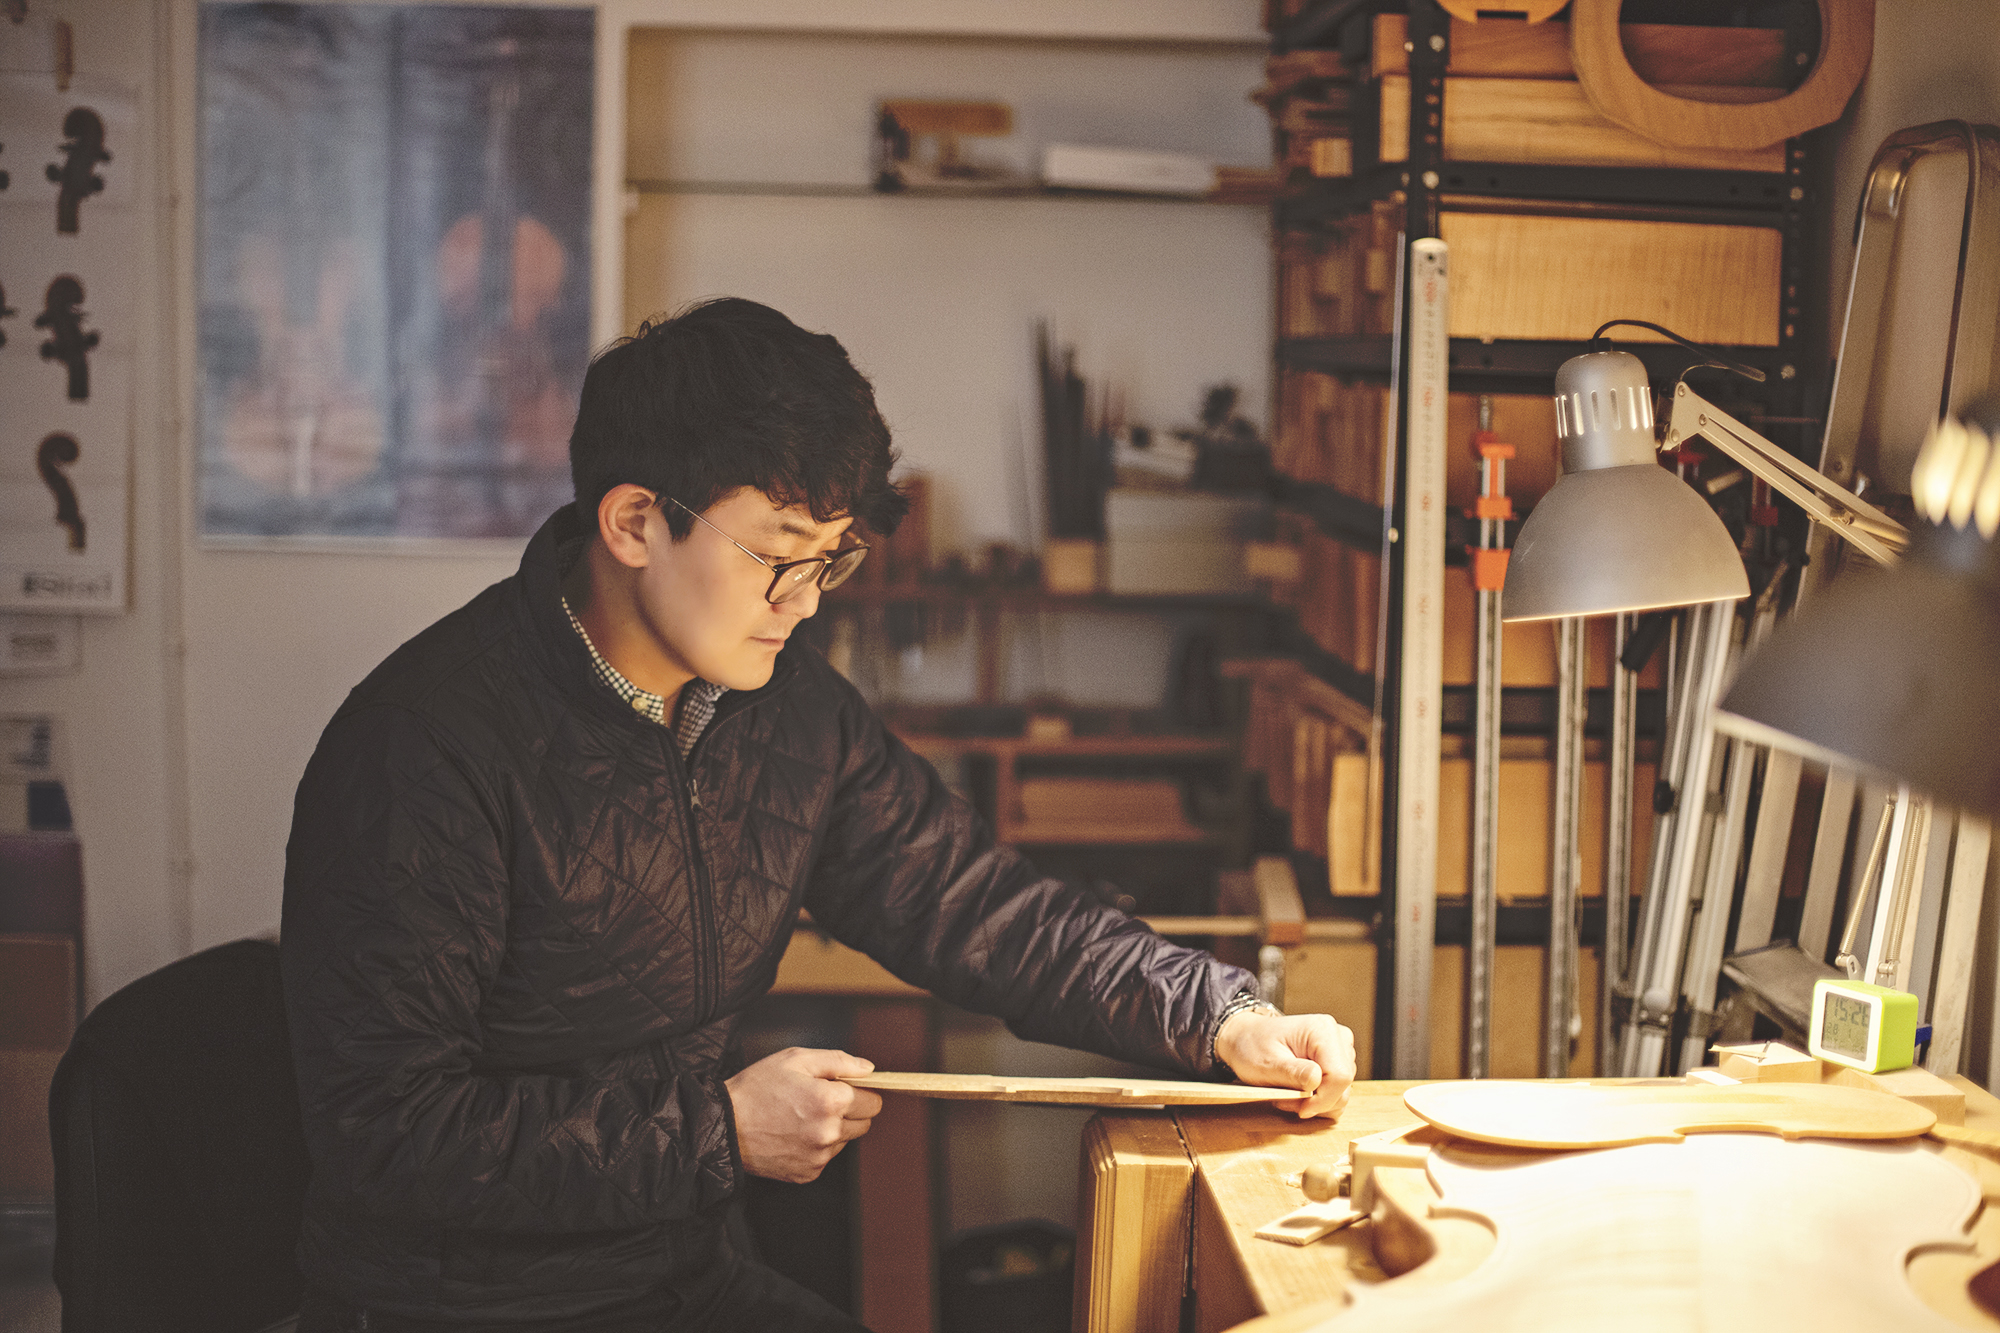 Luthier Lee Seung Jin